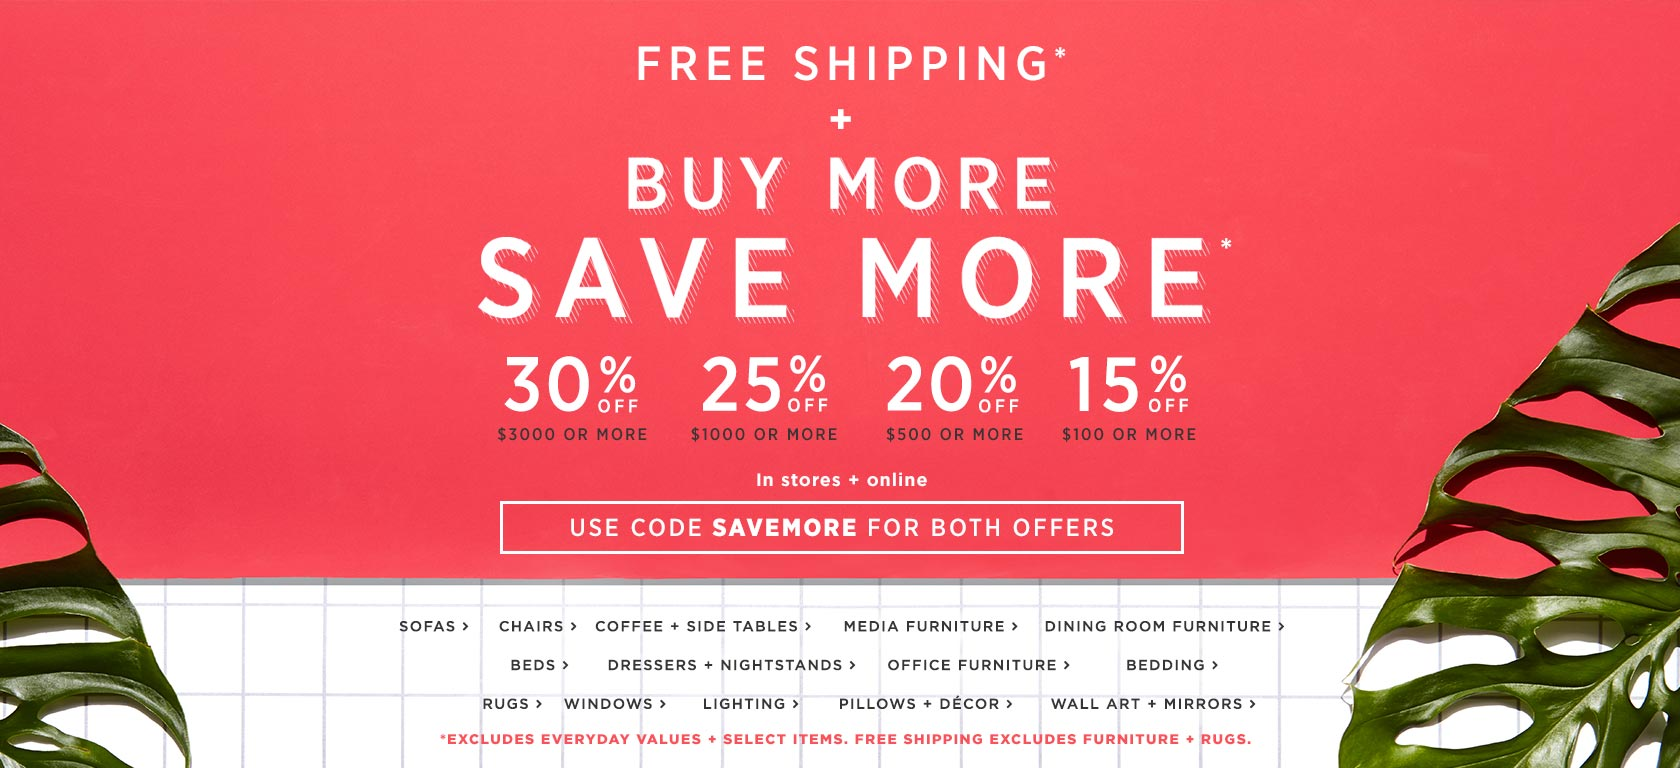 Free Shipping + Buy More Save More! Use Code SAVEMORE For Both Offers